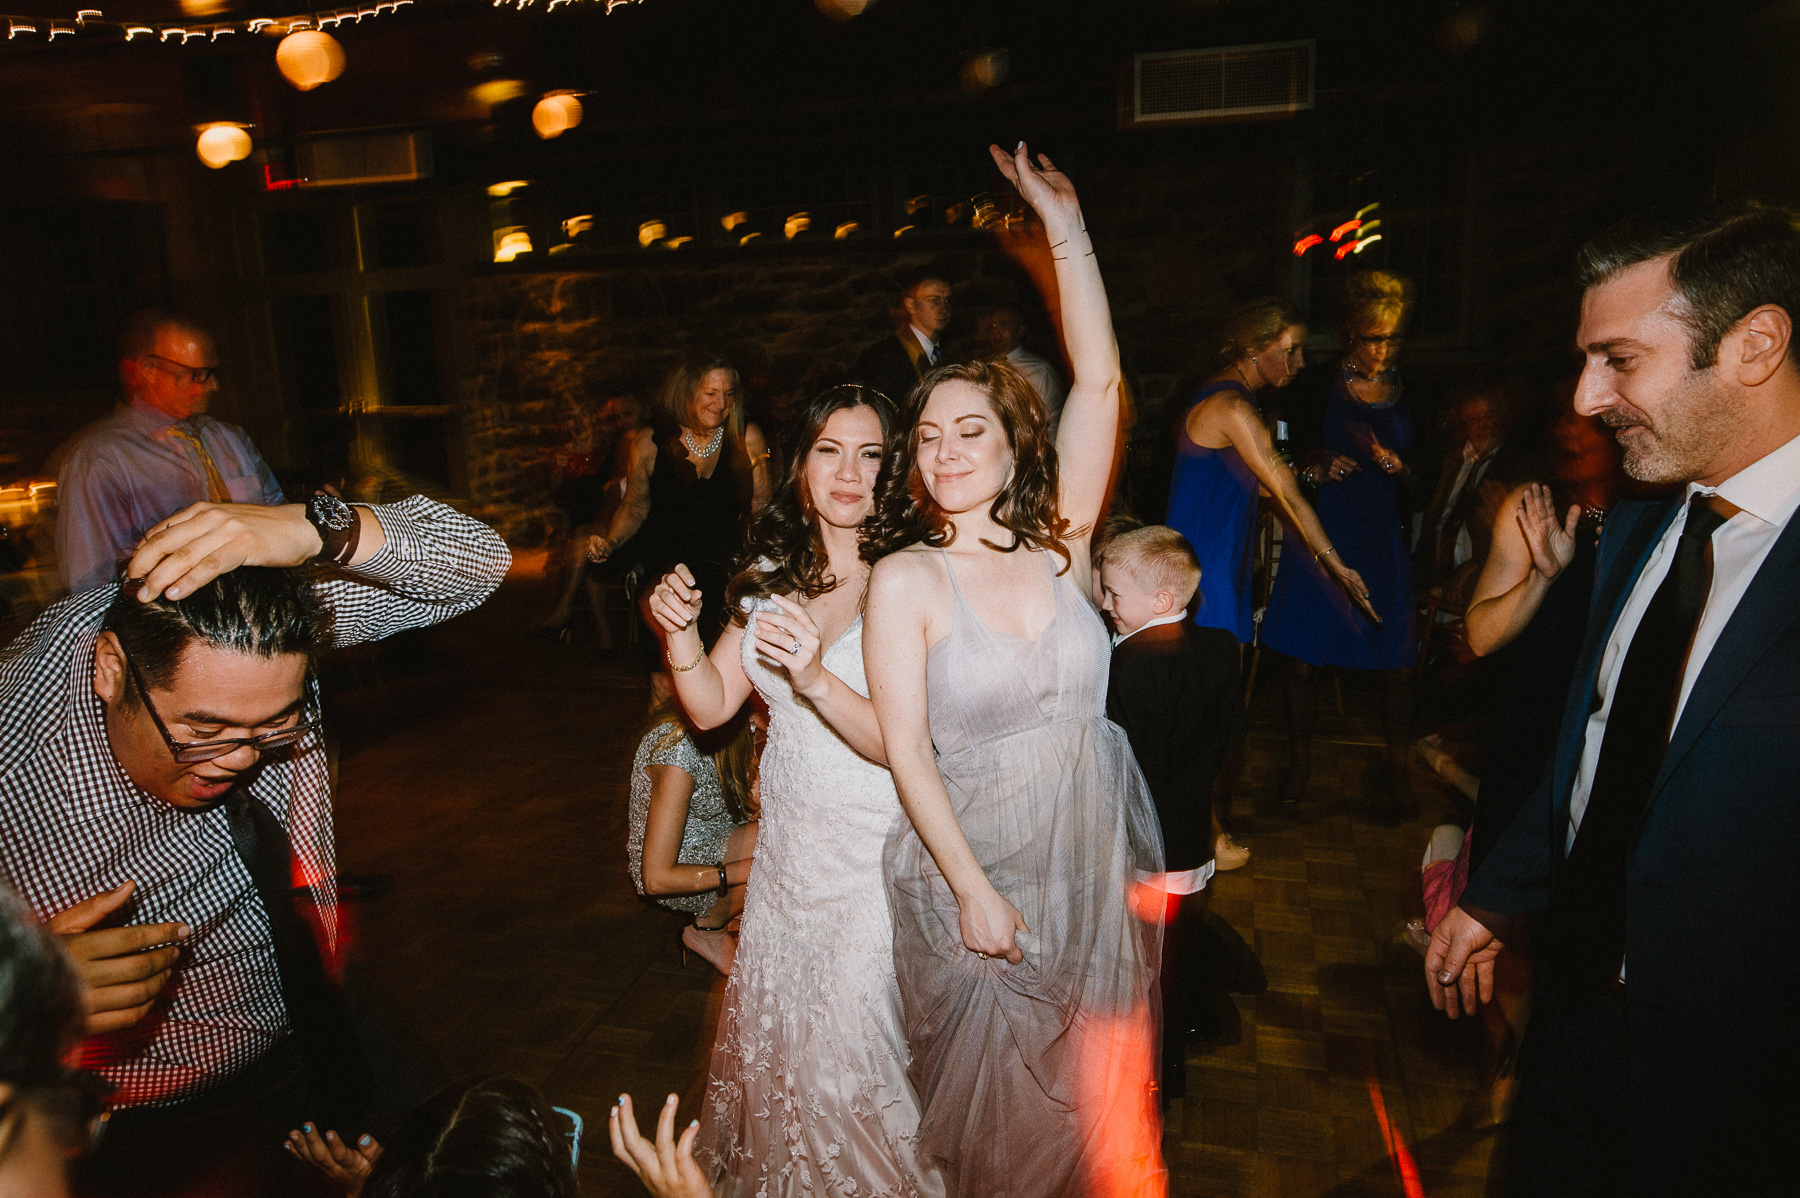 The_Carriage_House_at_Rockwood_Park_wedding_photo087.jpg